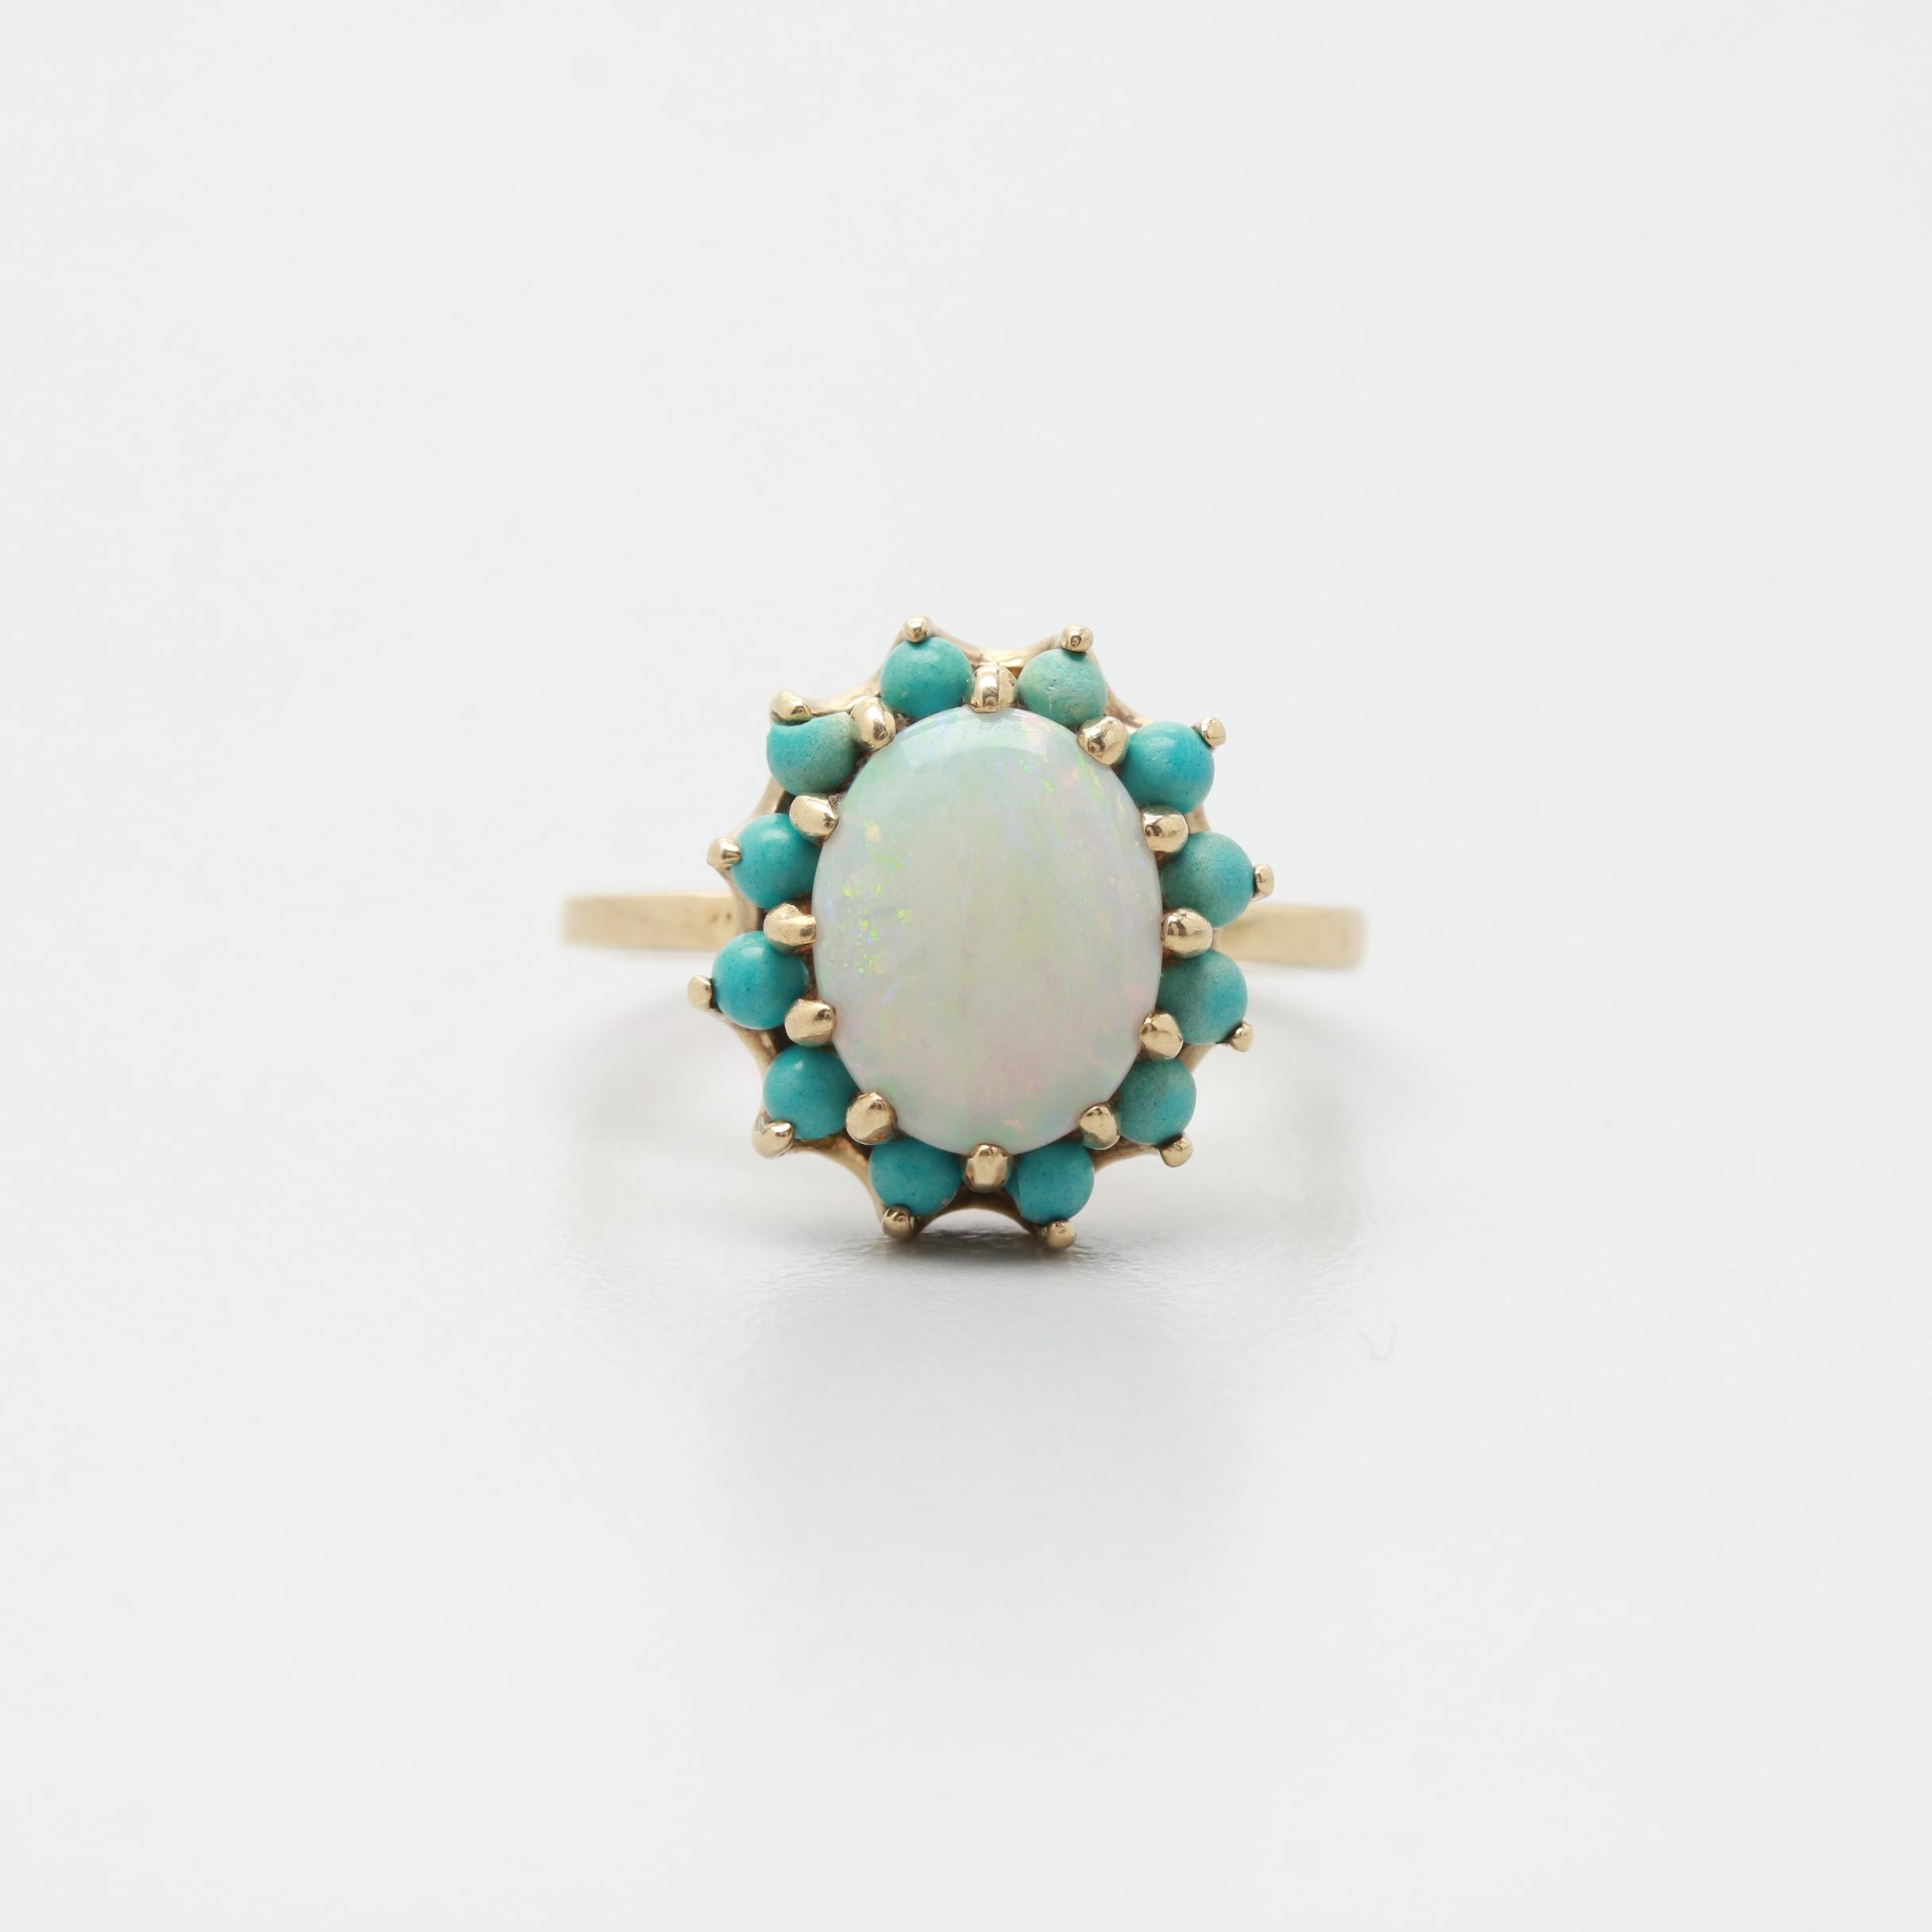 Vintage 10K Yellow Gold Opal and Imitation Turquoise Ring